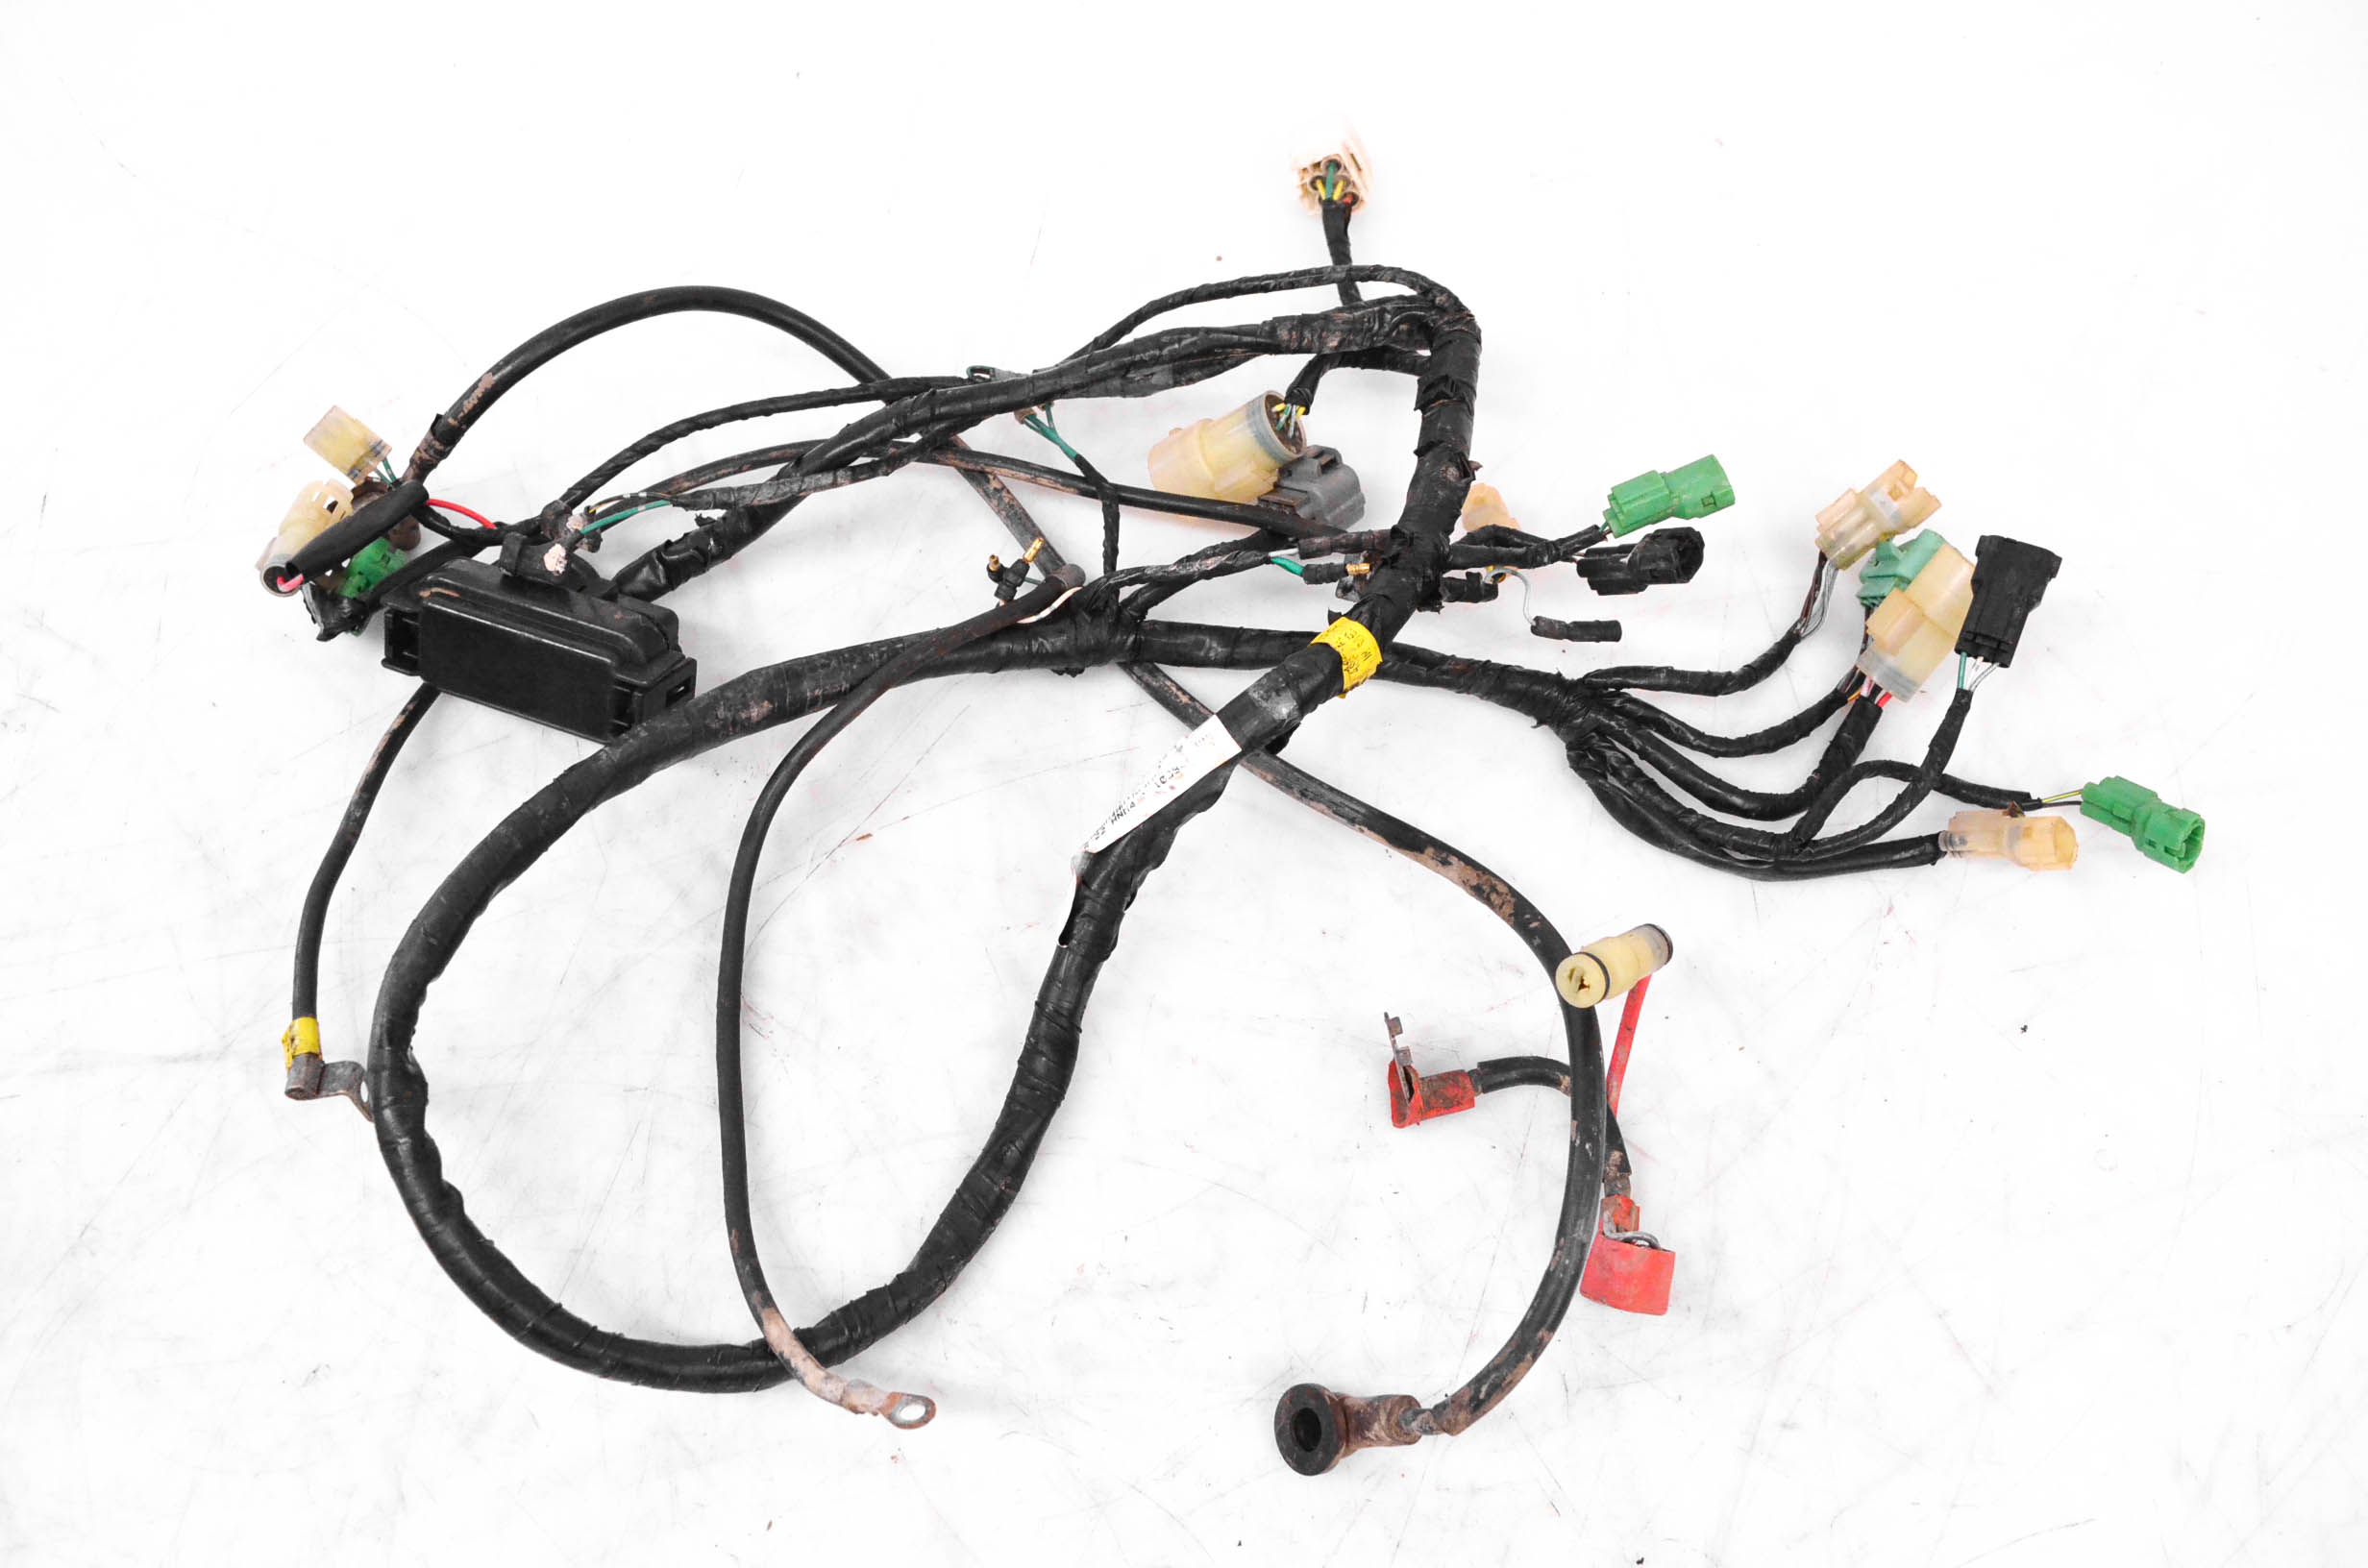 04 Honda Rancher 350 4x4 Wire Harness Electrical Wiring